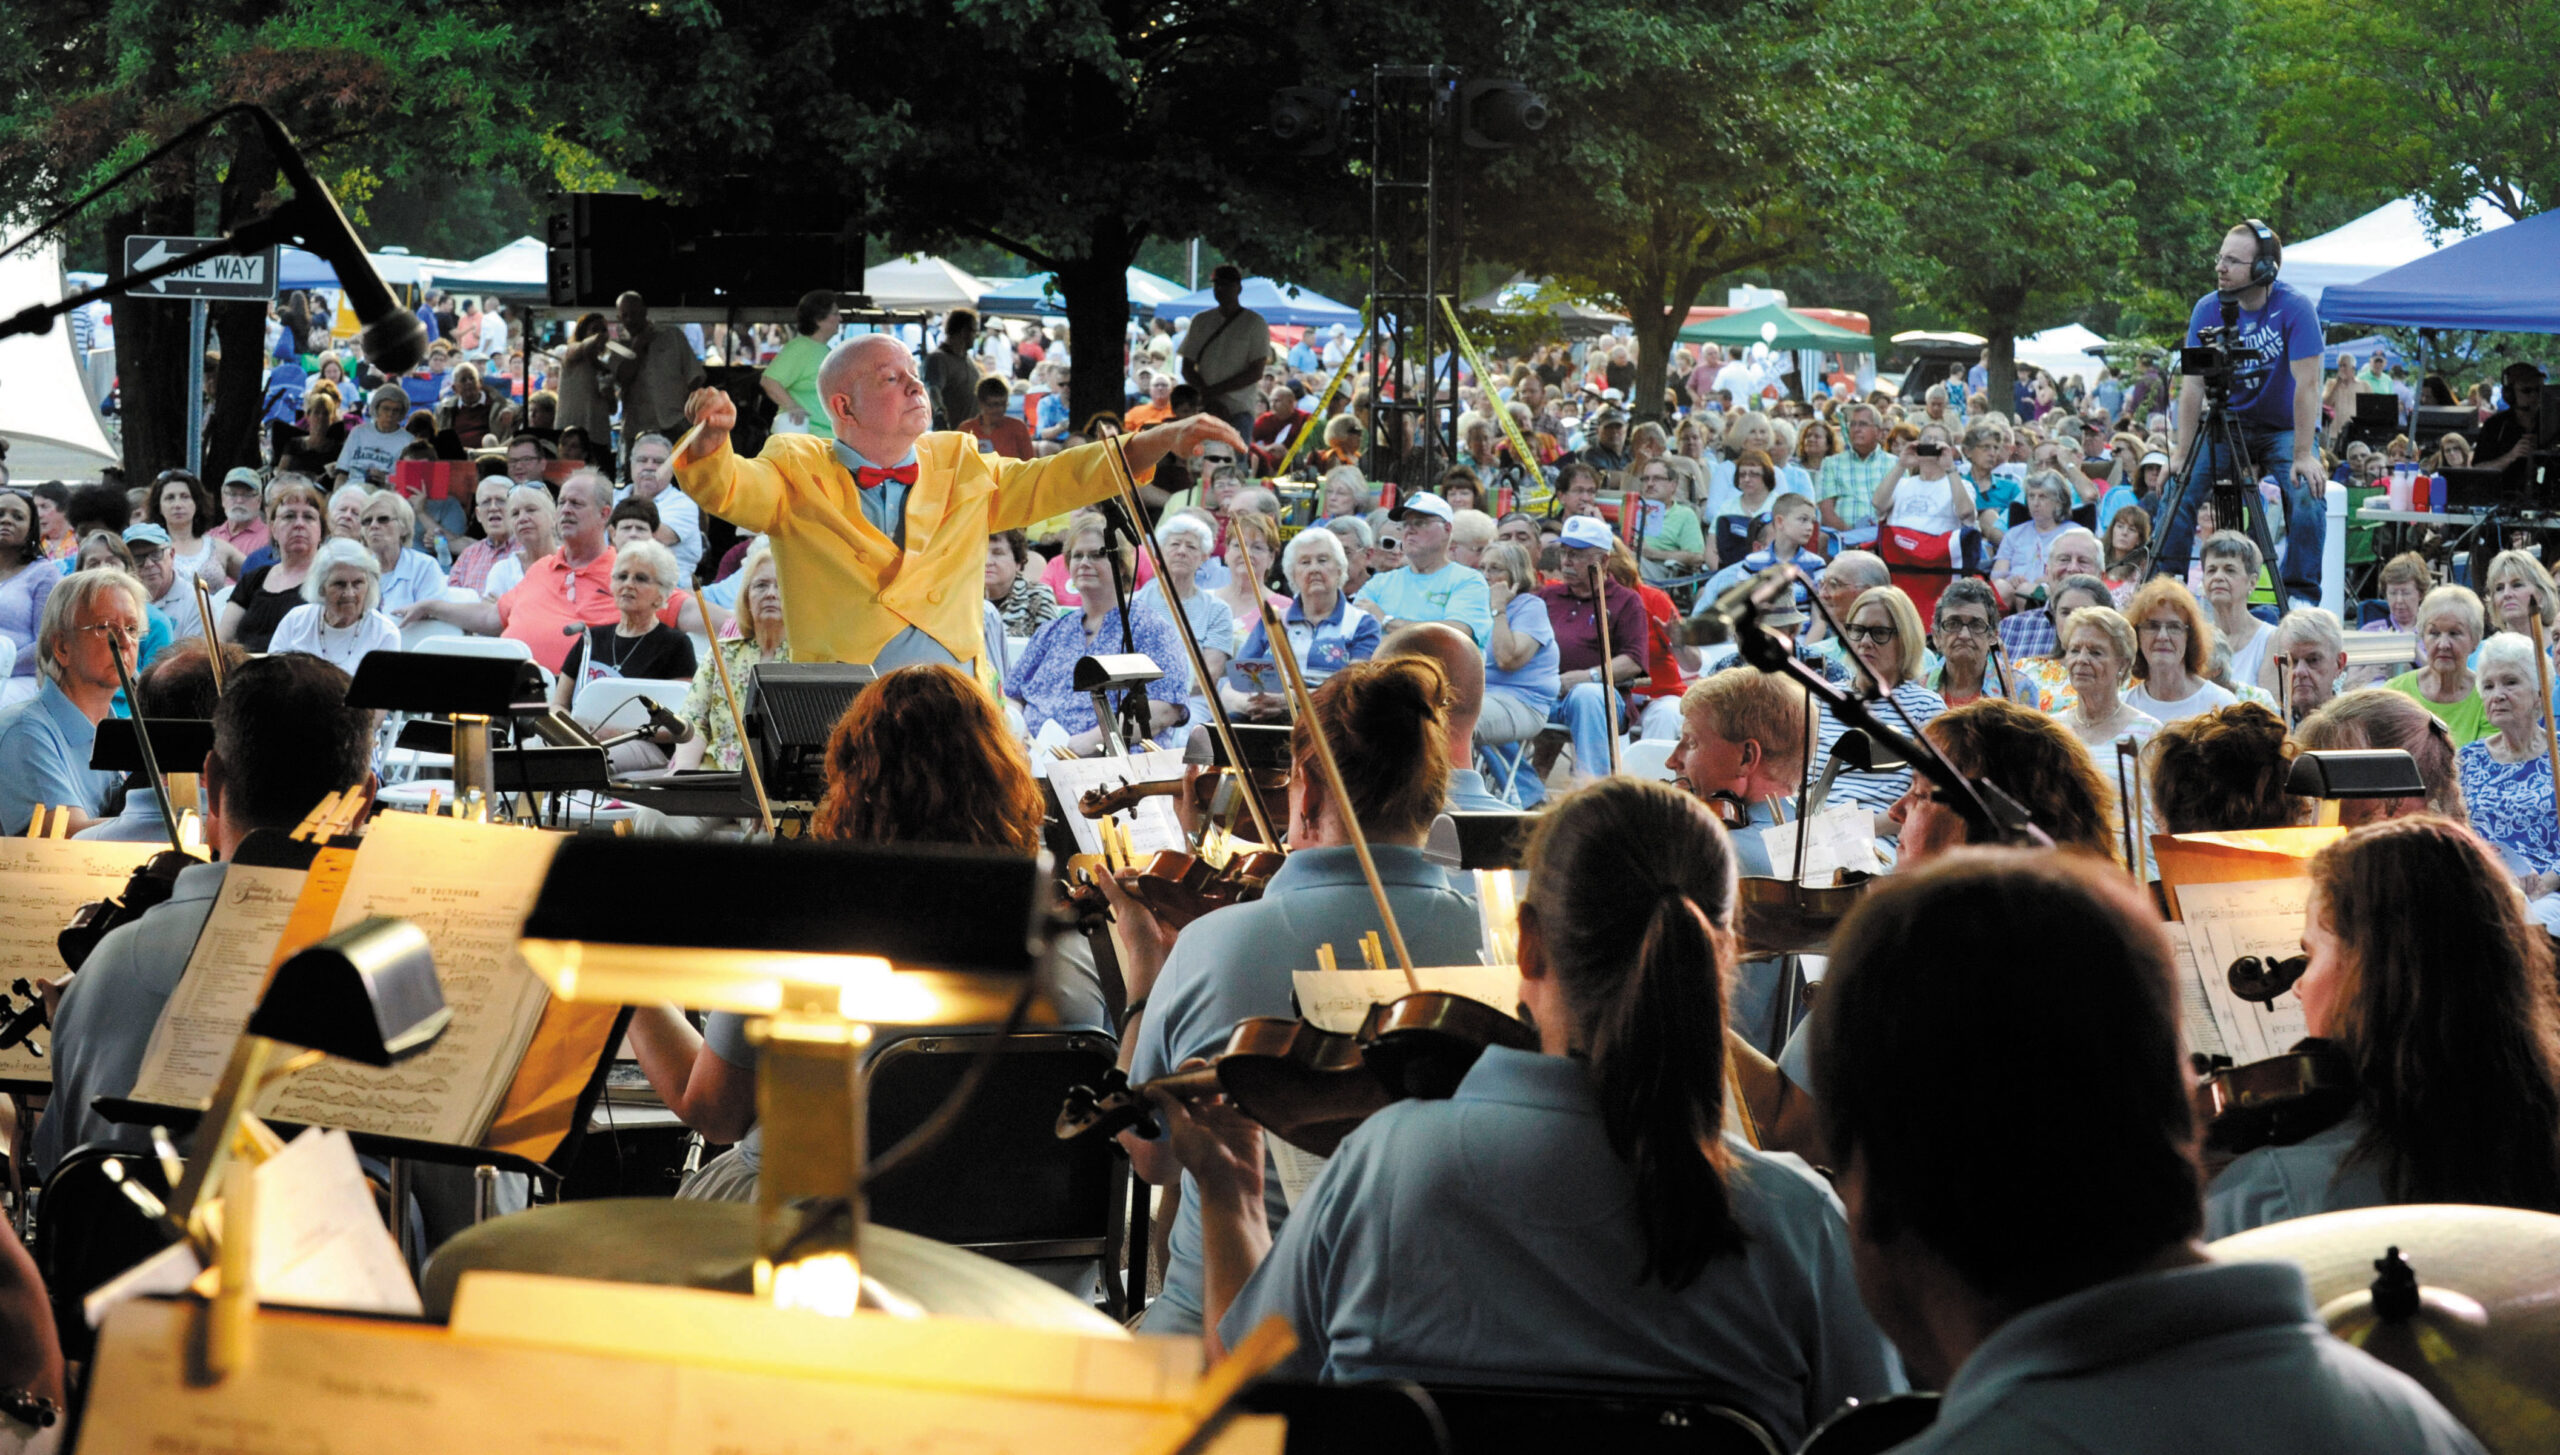 Conductor David Hagy leads the music at the Salisbury Symphony's Pops at the Post with a crowd behind them watching.